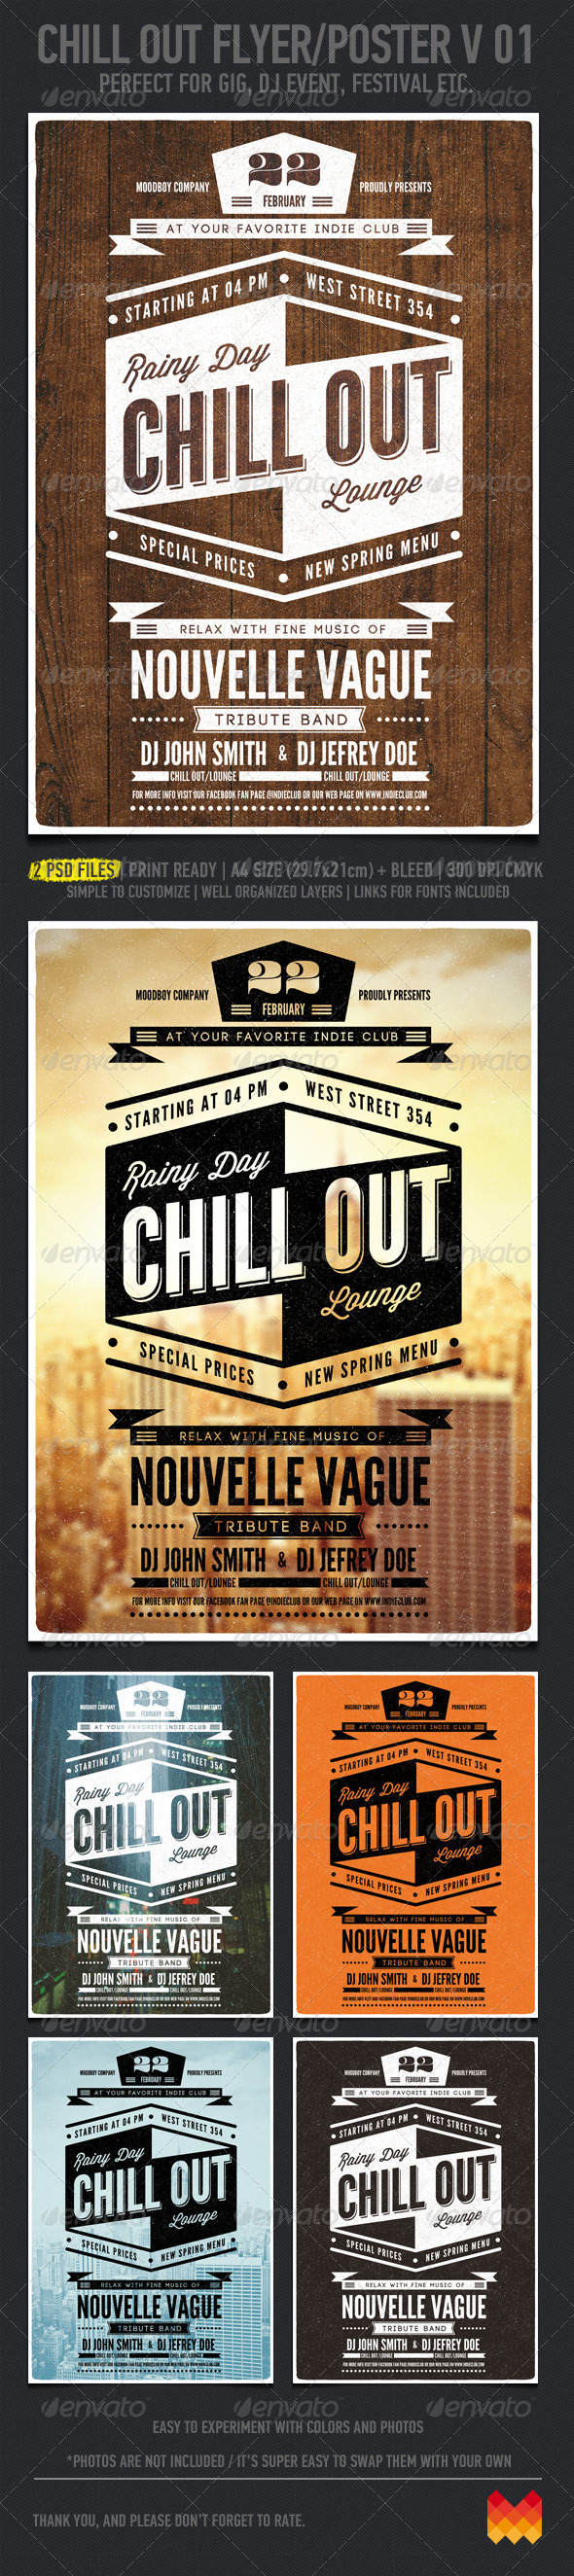 GraphicRiver Chill Out Flyer Poster V 01 4203215